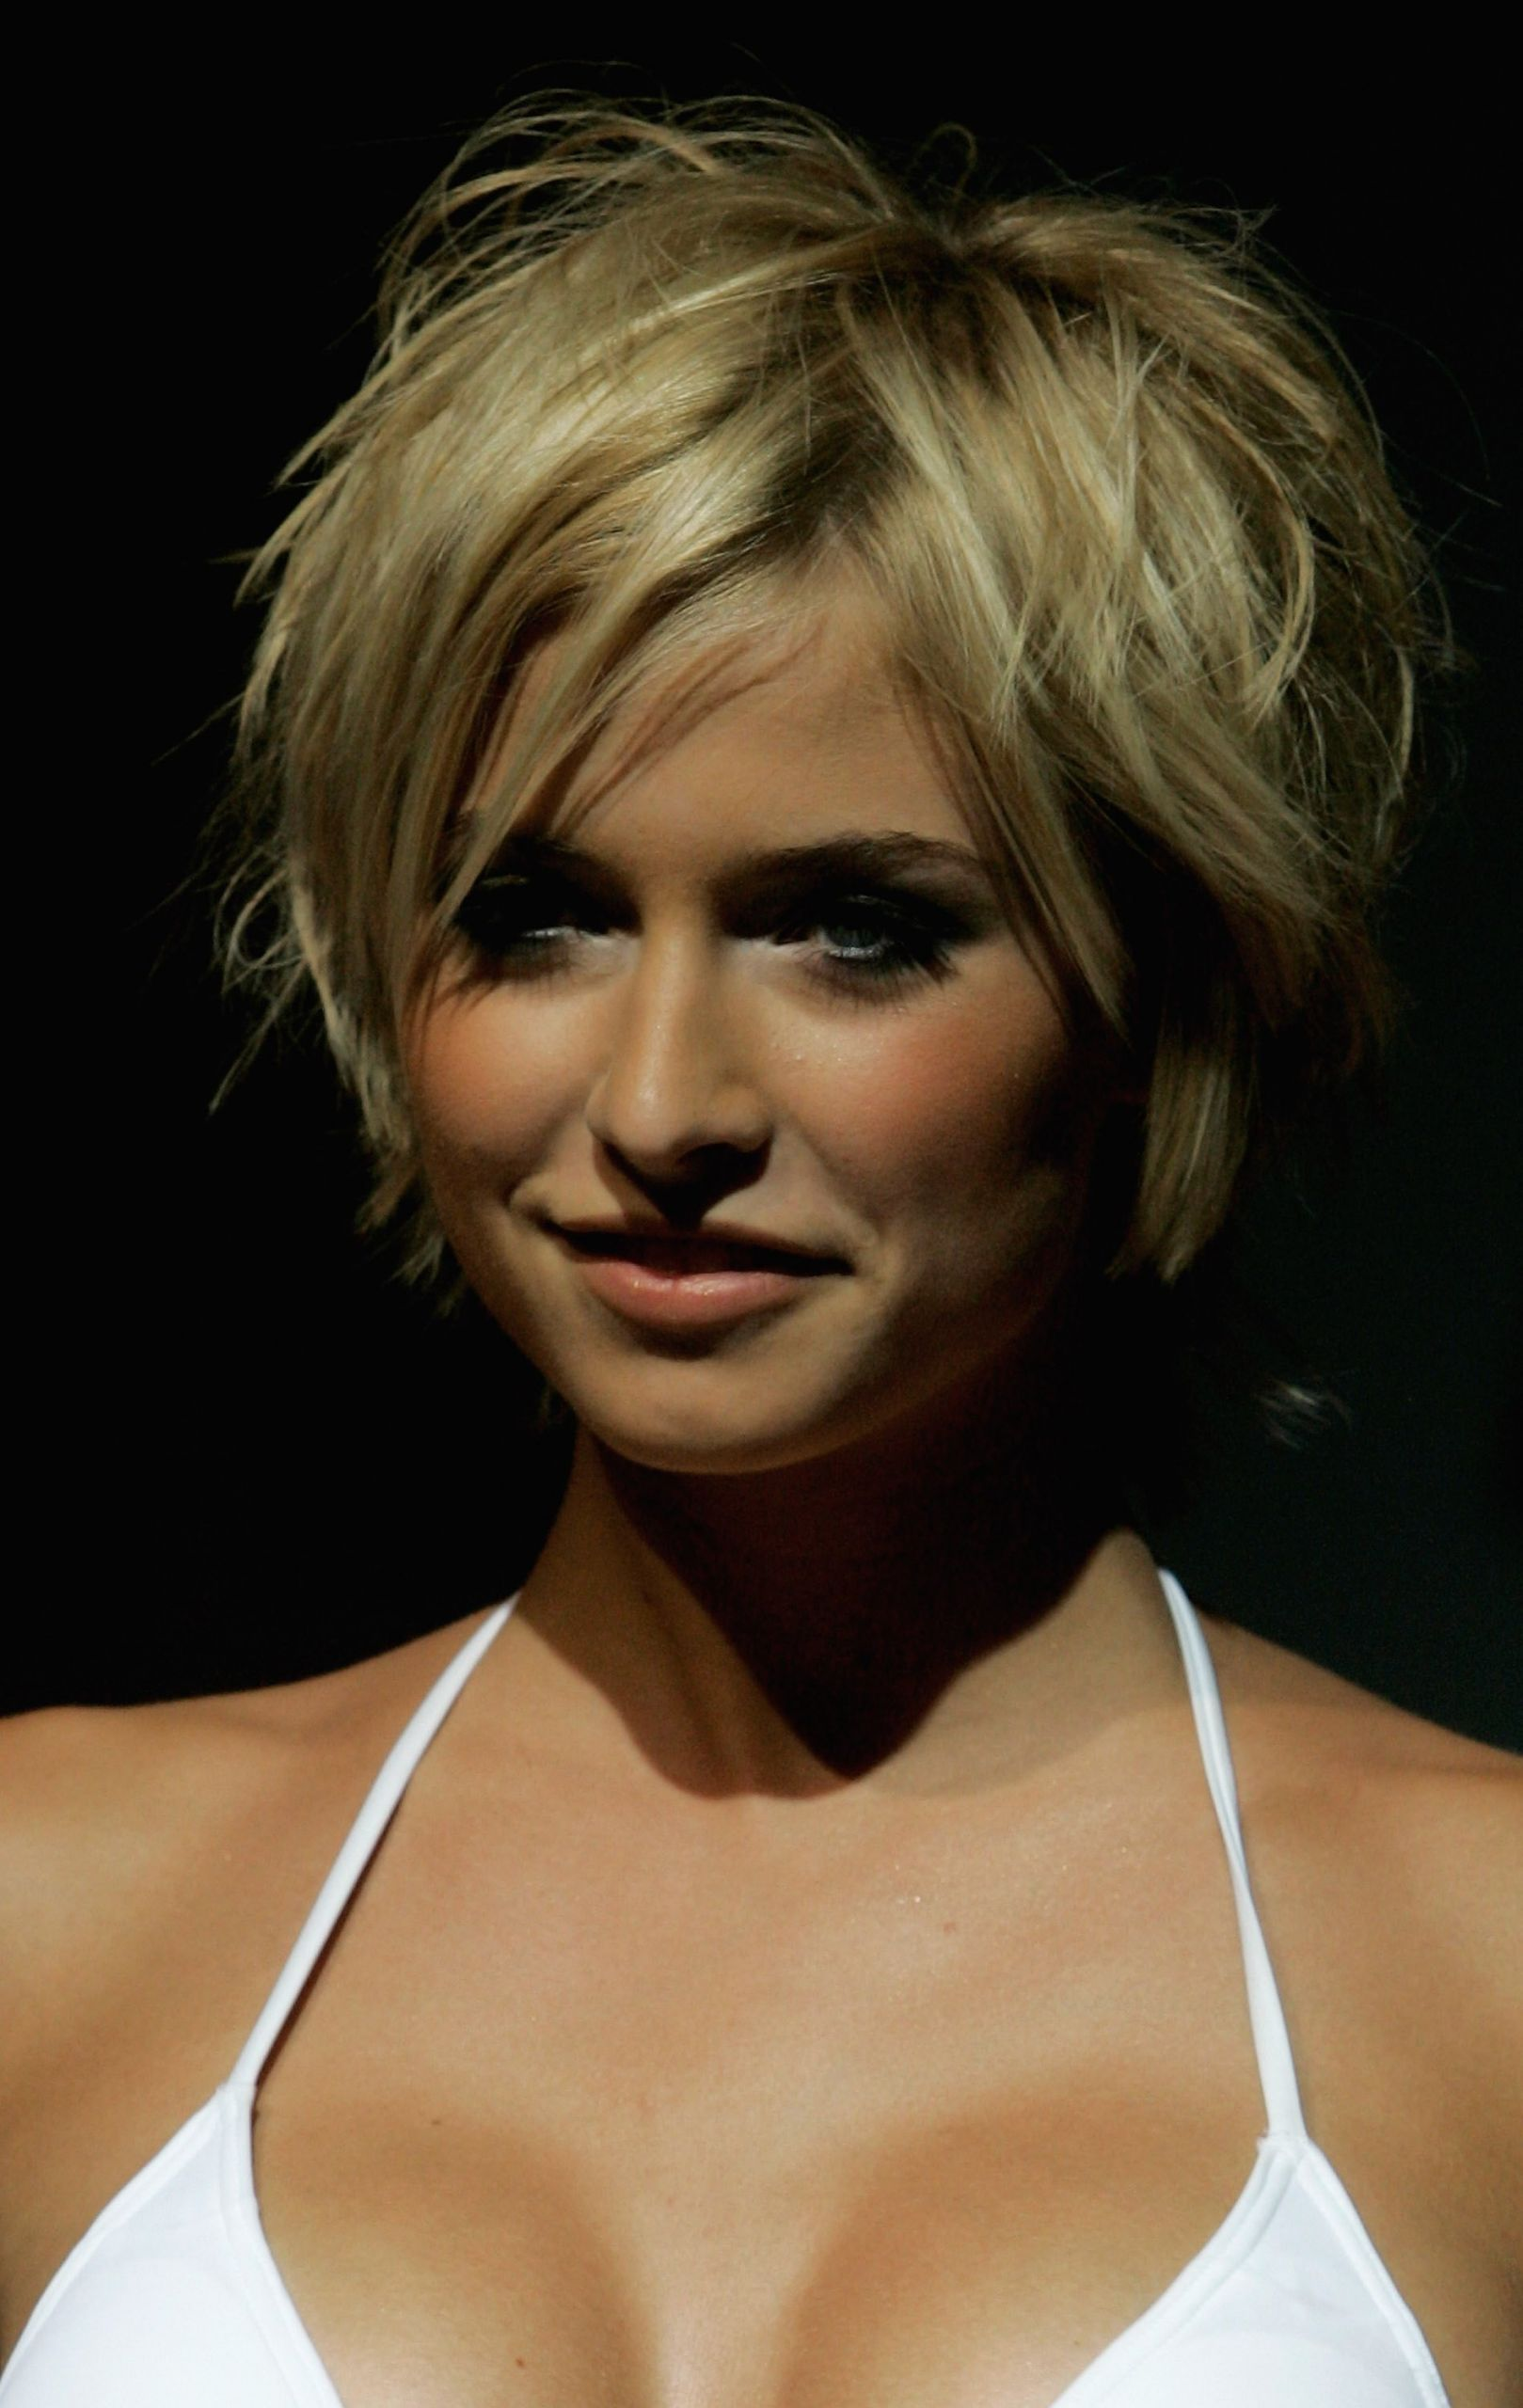 Messy Hairstyles For Short Hair  20 Romantic Messy Hairstyles with MagMent